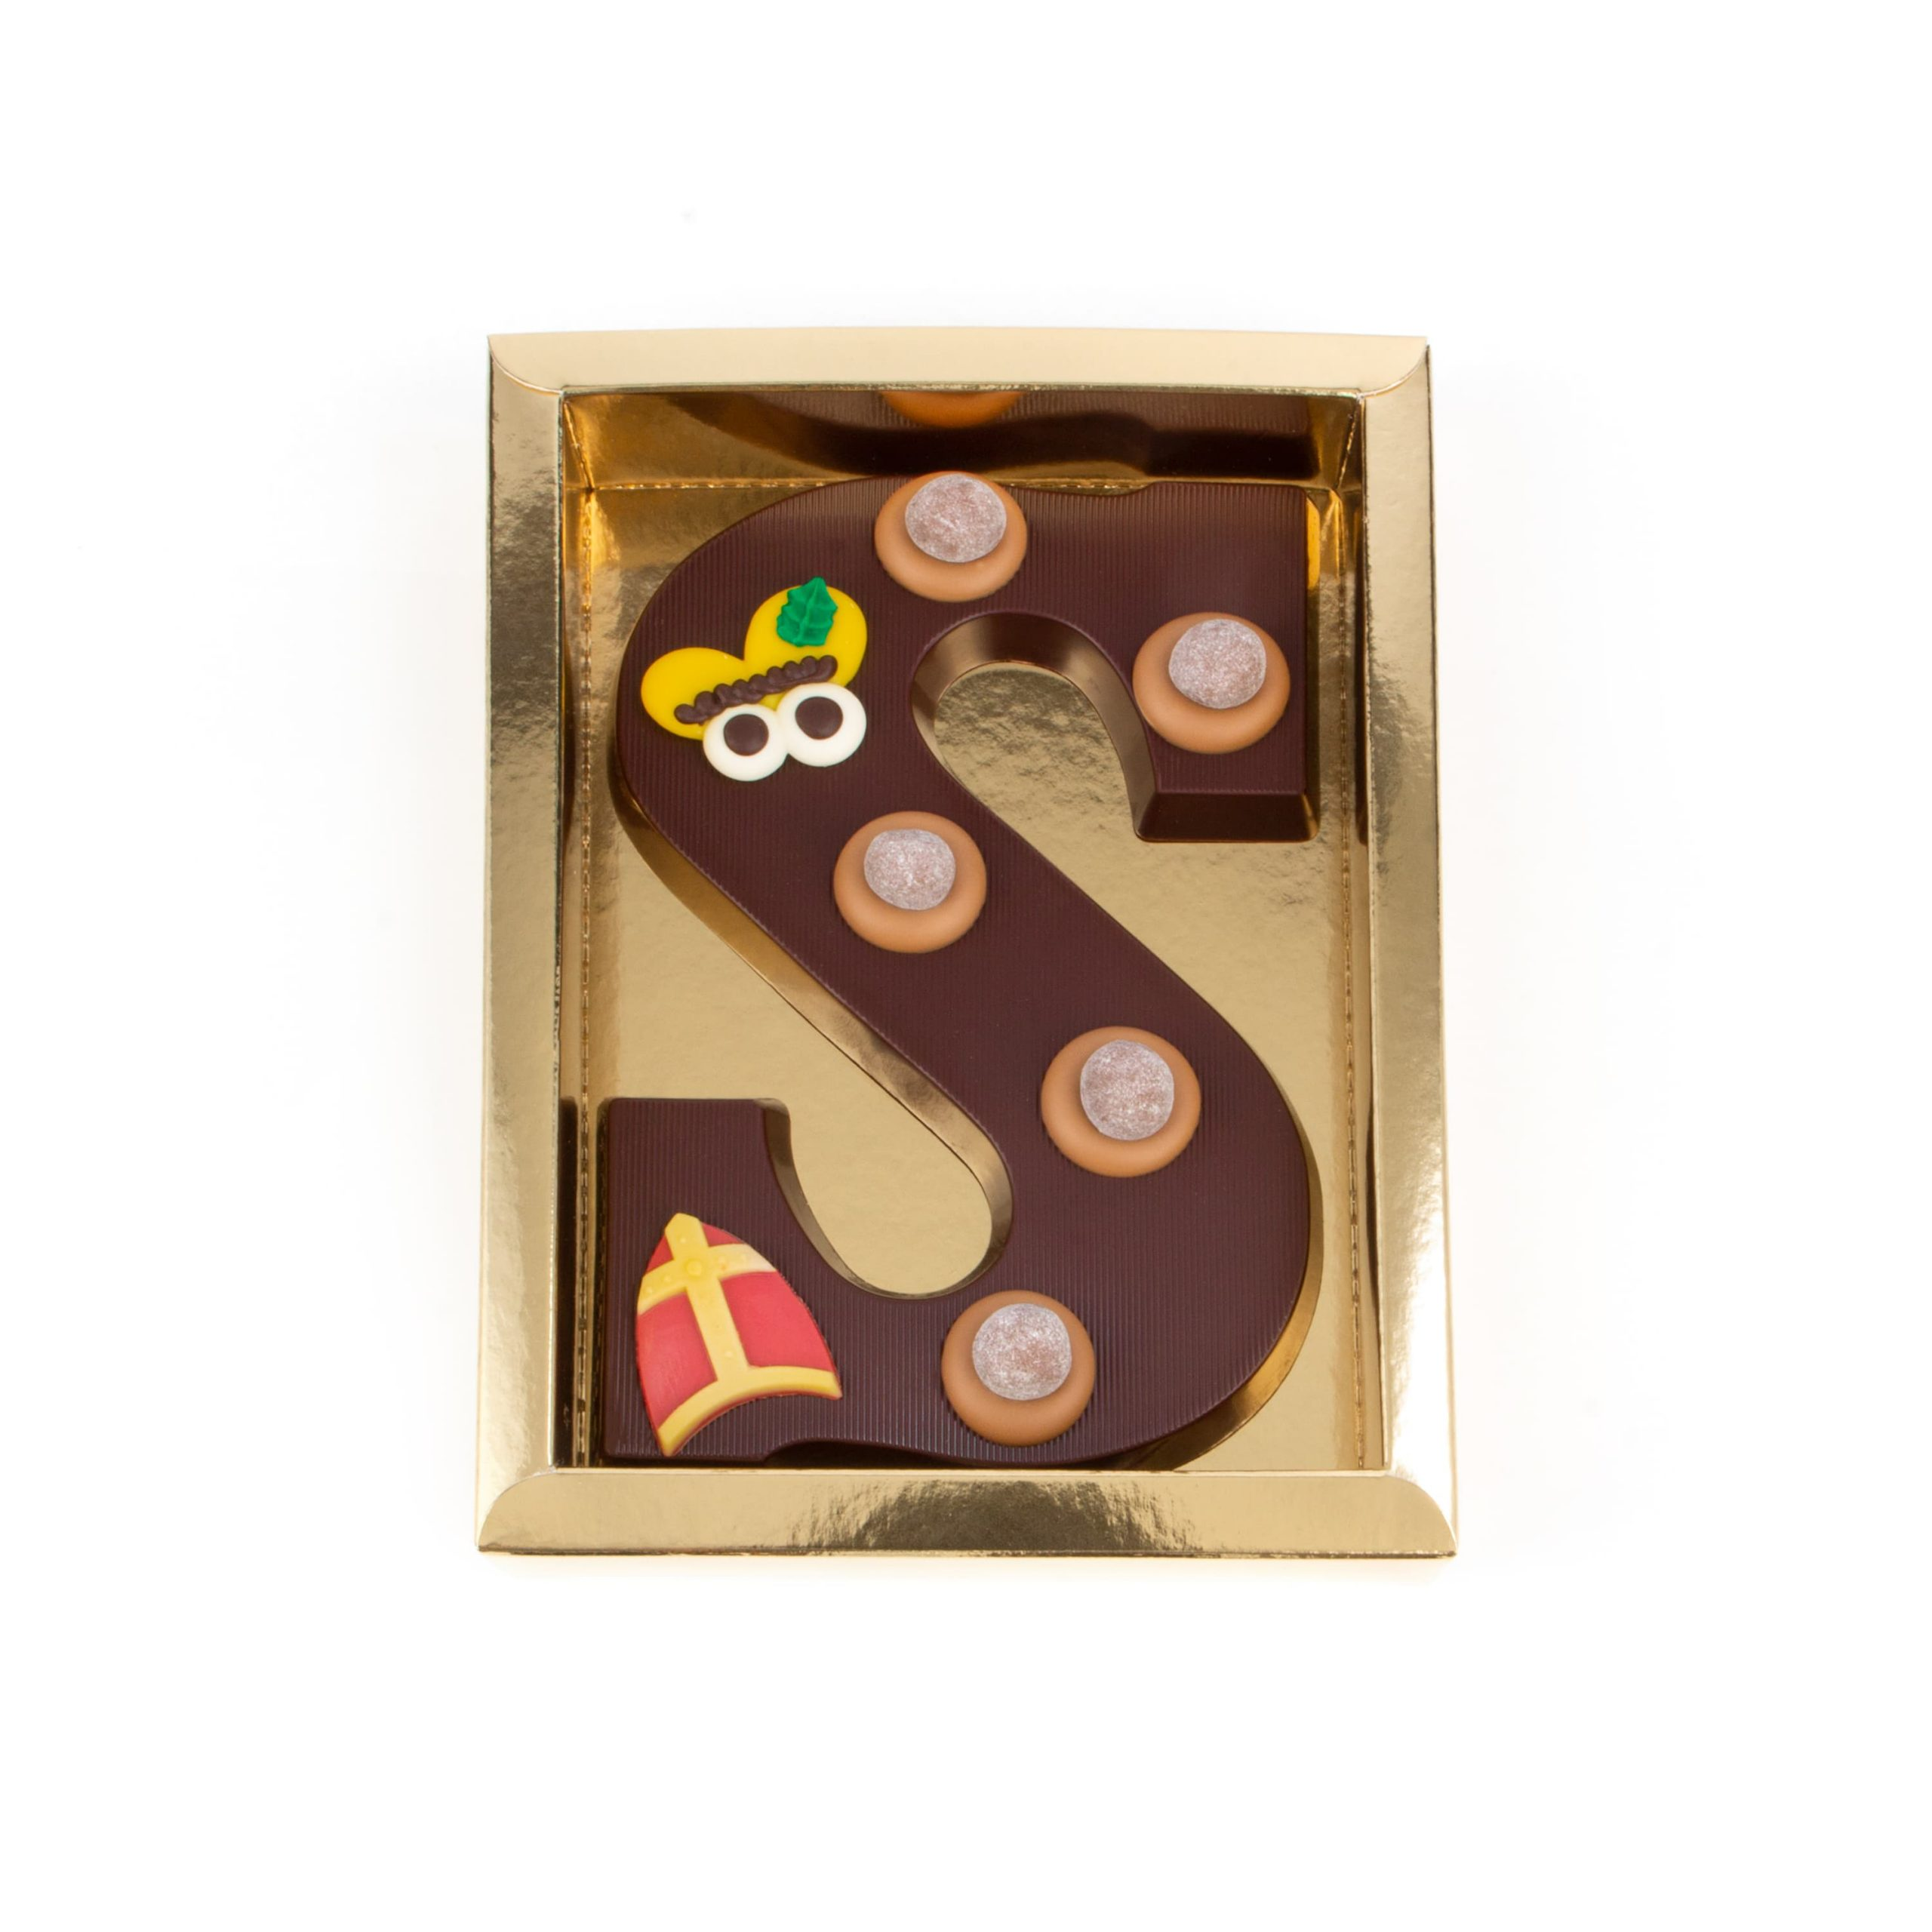 Chocolade Letter S - Piet Puur Groot